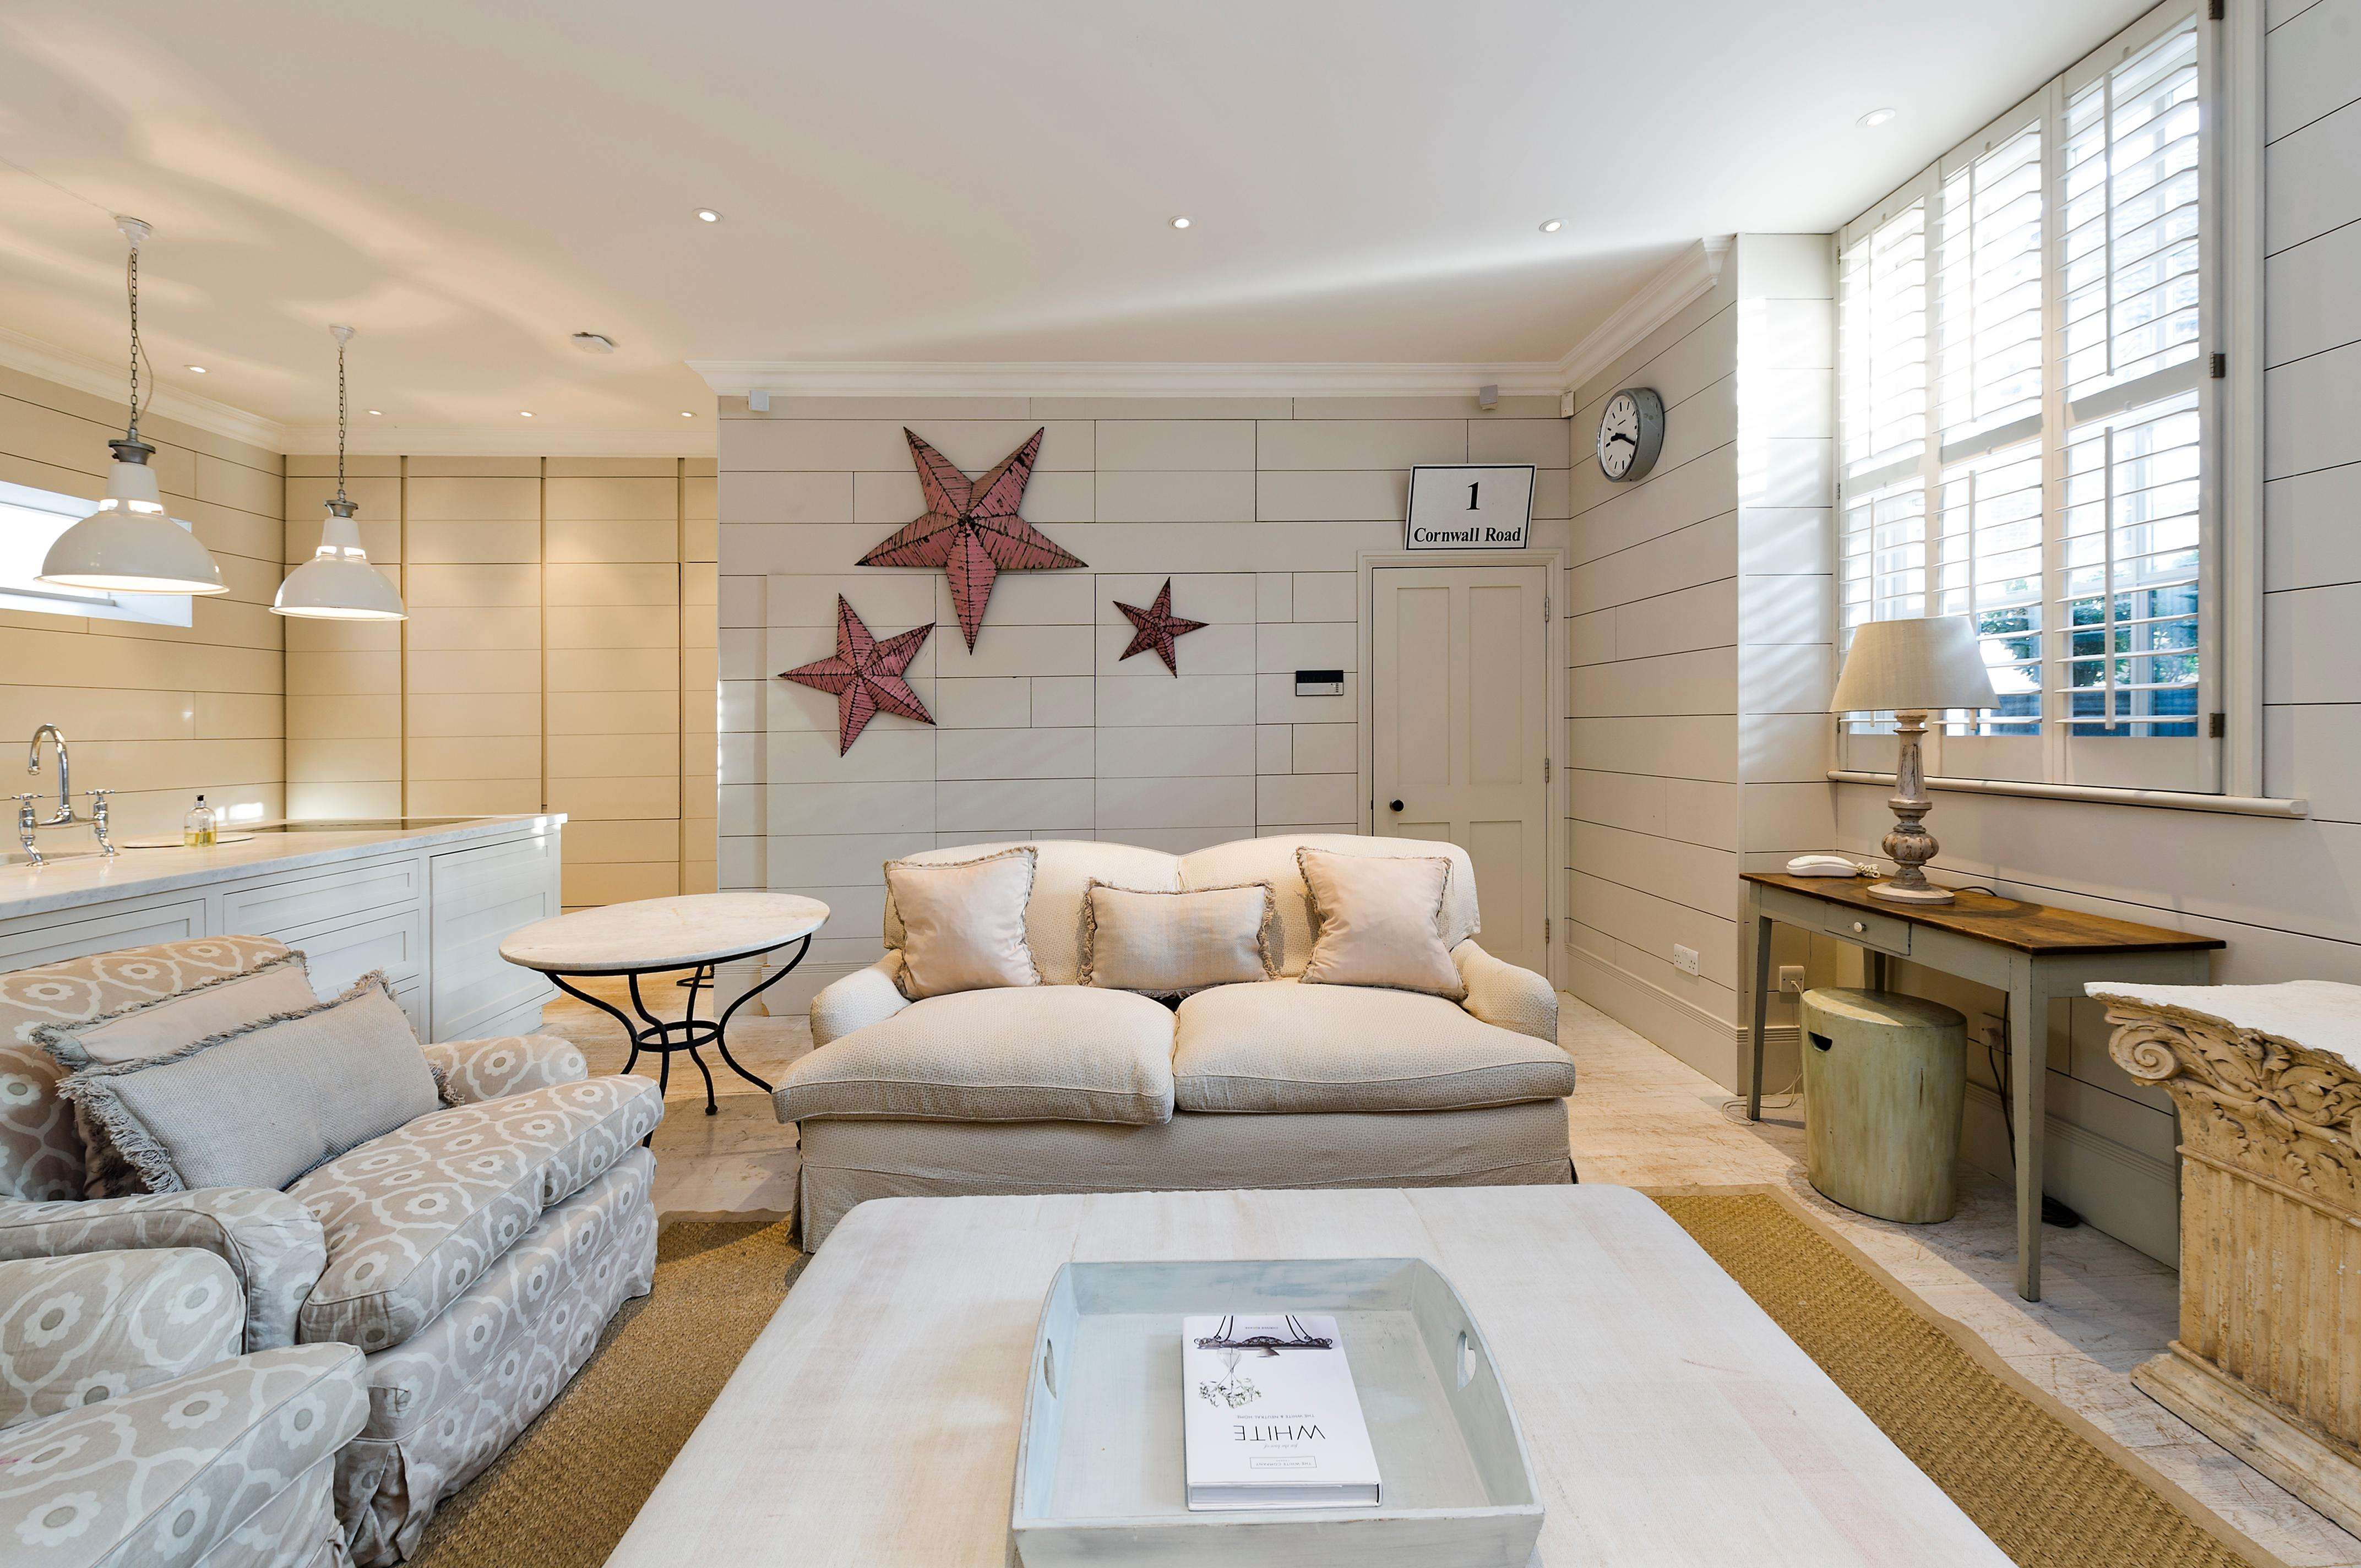 Property Image 1 - Delightful Mews House close to Battersea Park